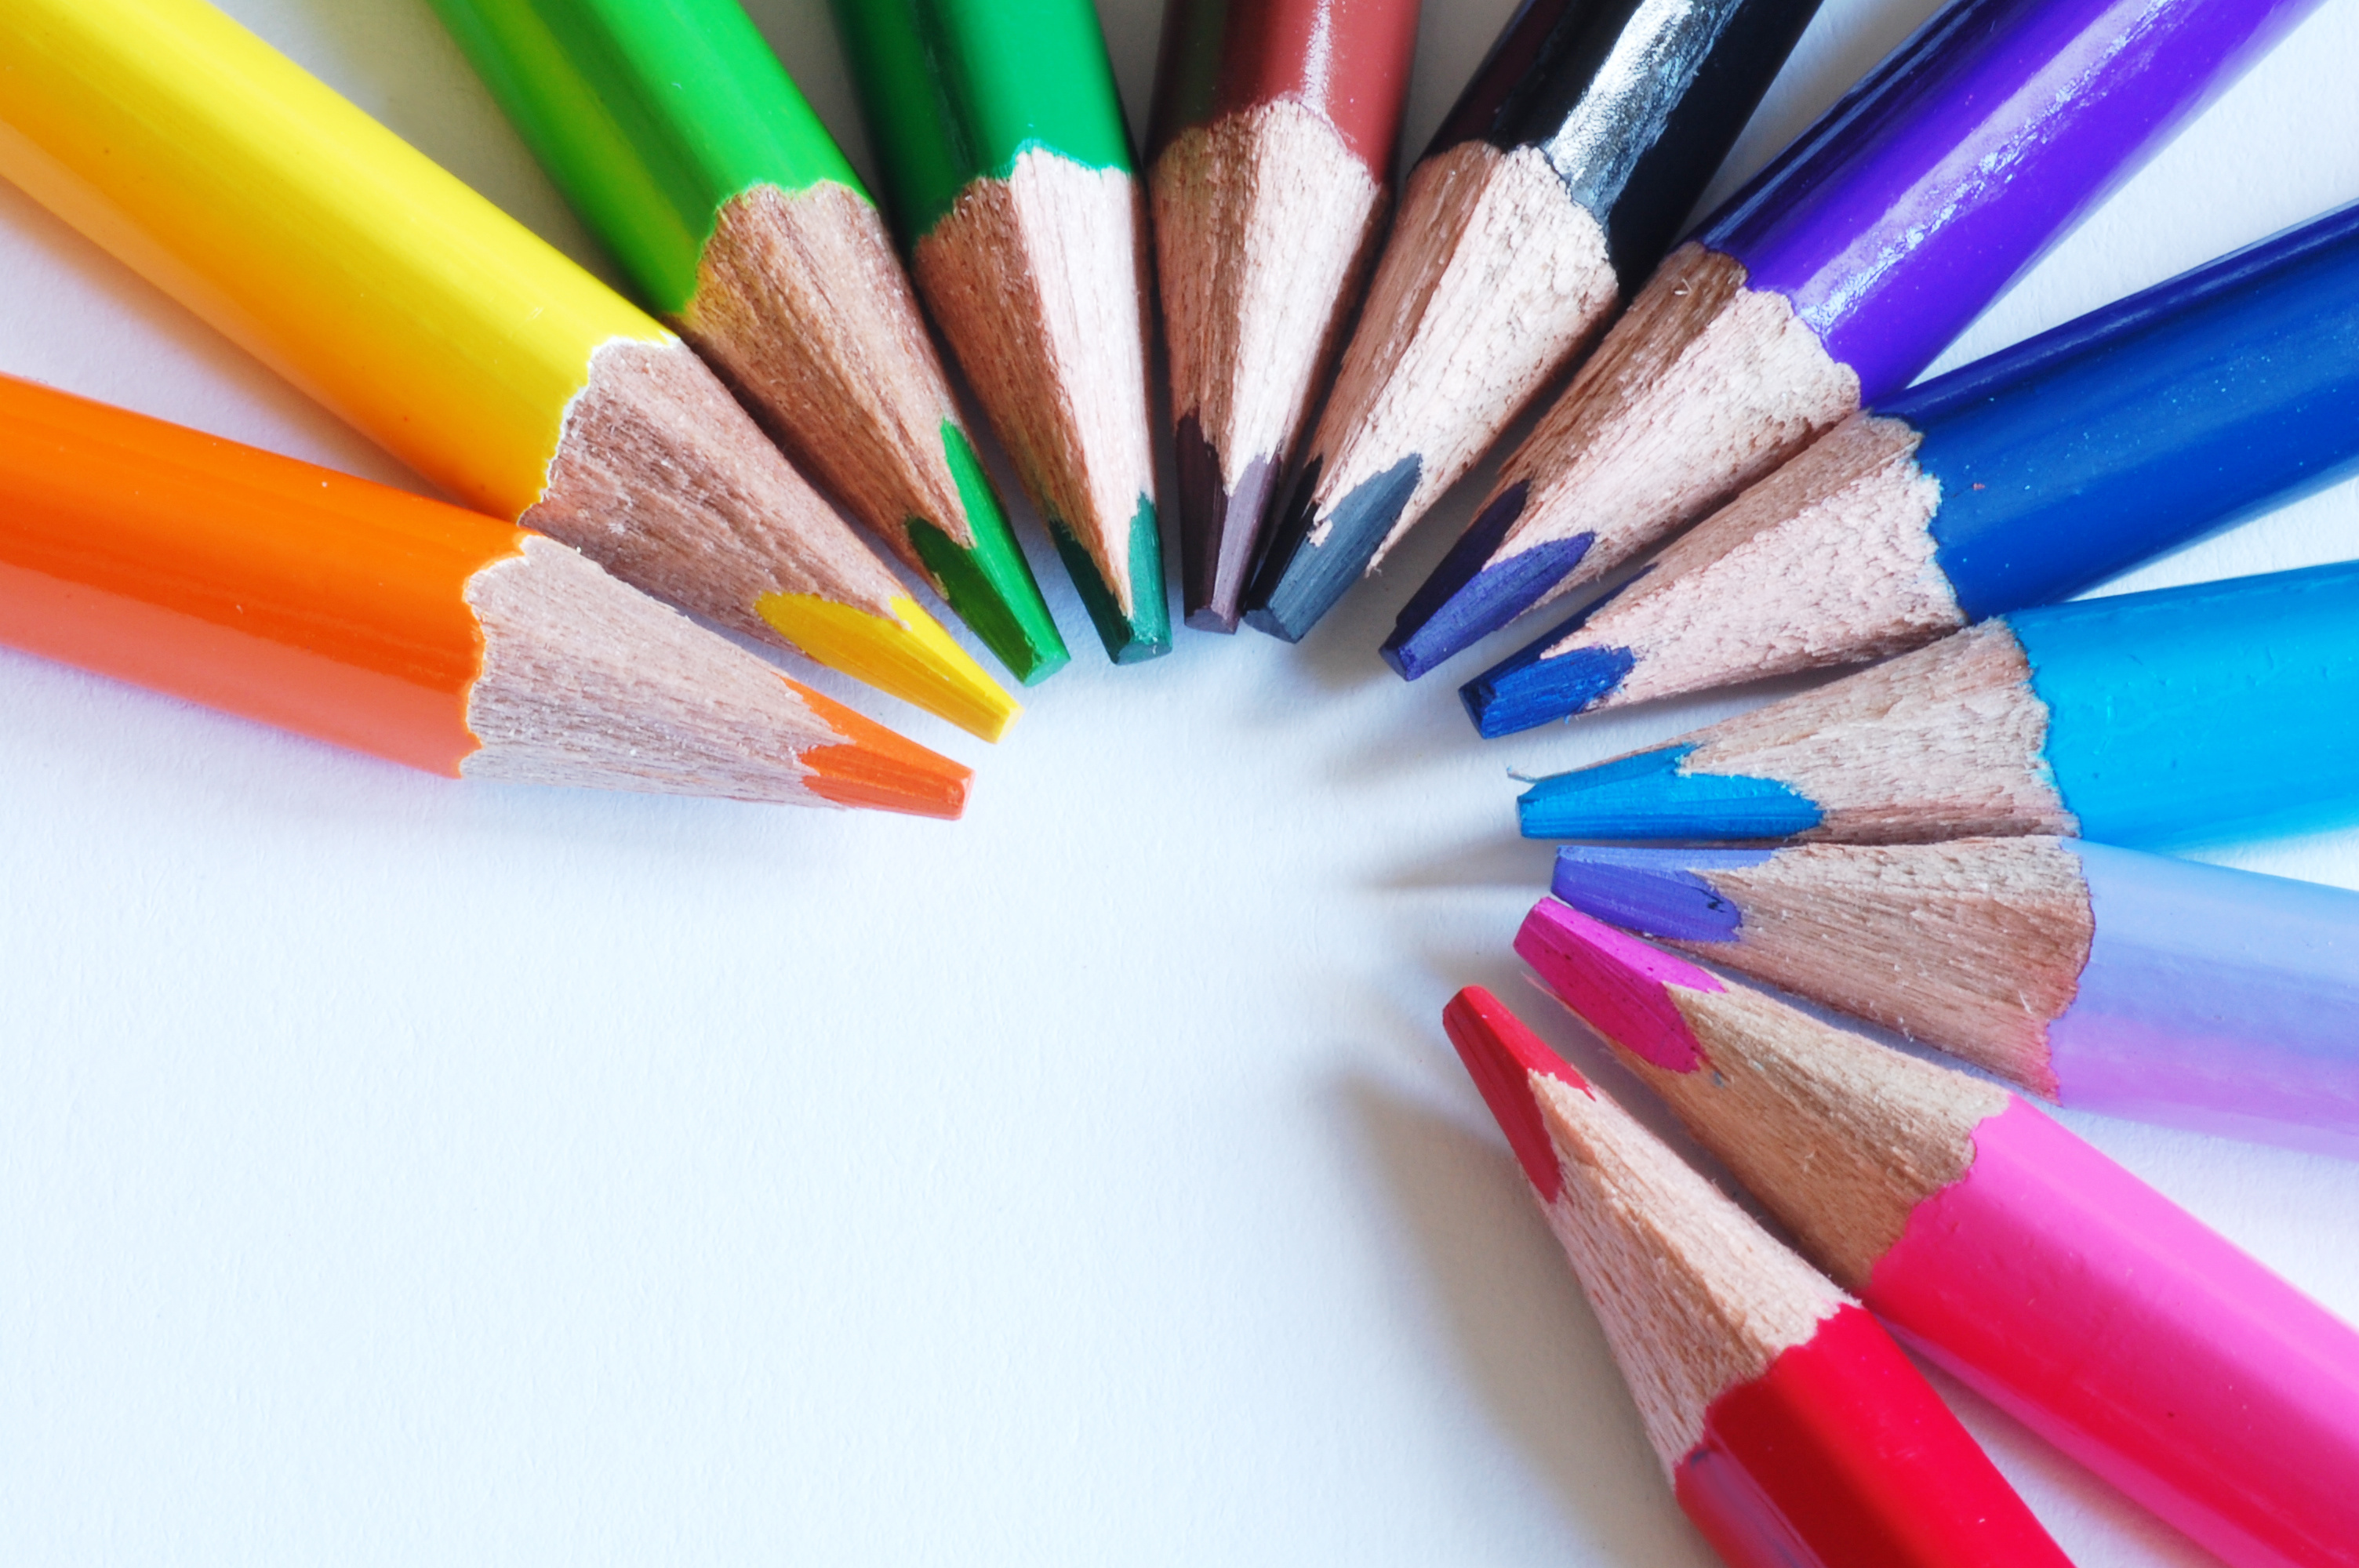 colored pencils, (c) Fotolia.com, cristinaduart, 34354906